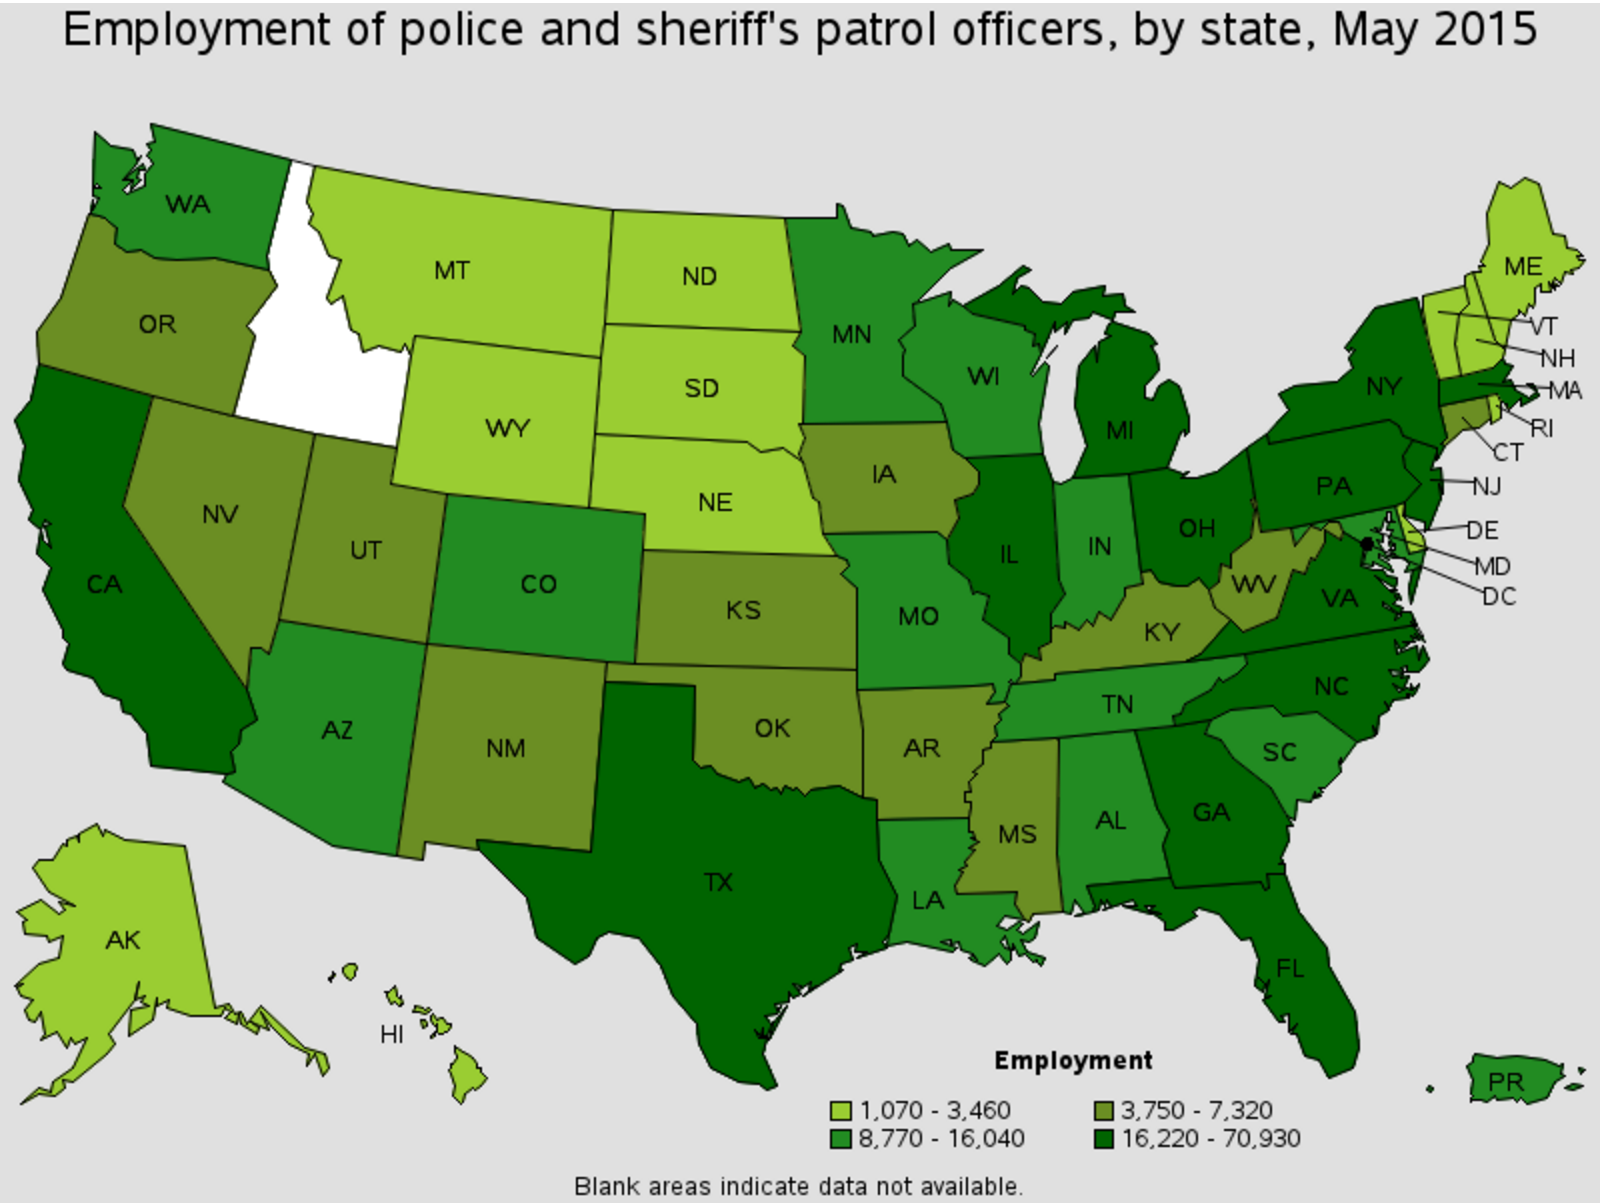 Laredo police officer career outlook by state